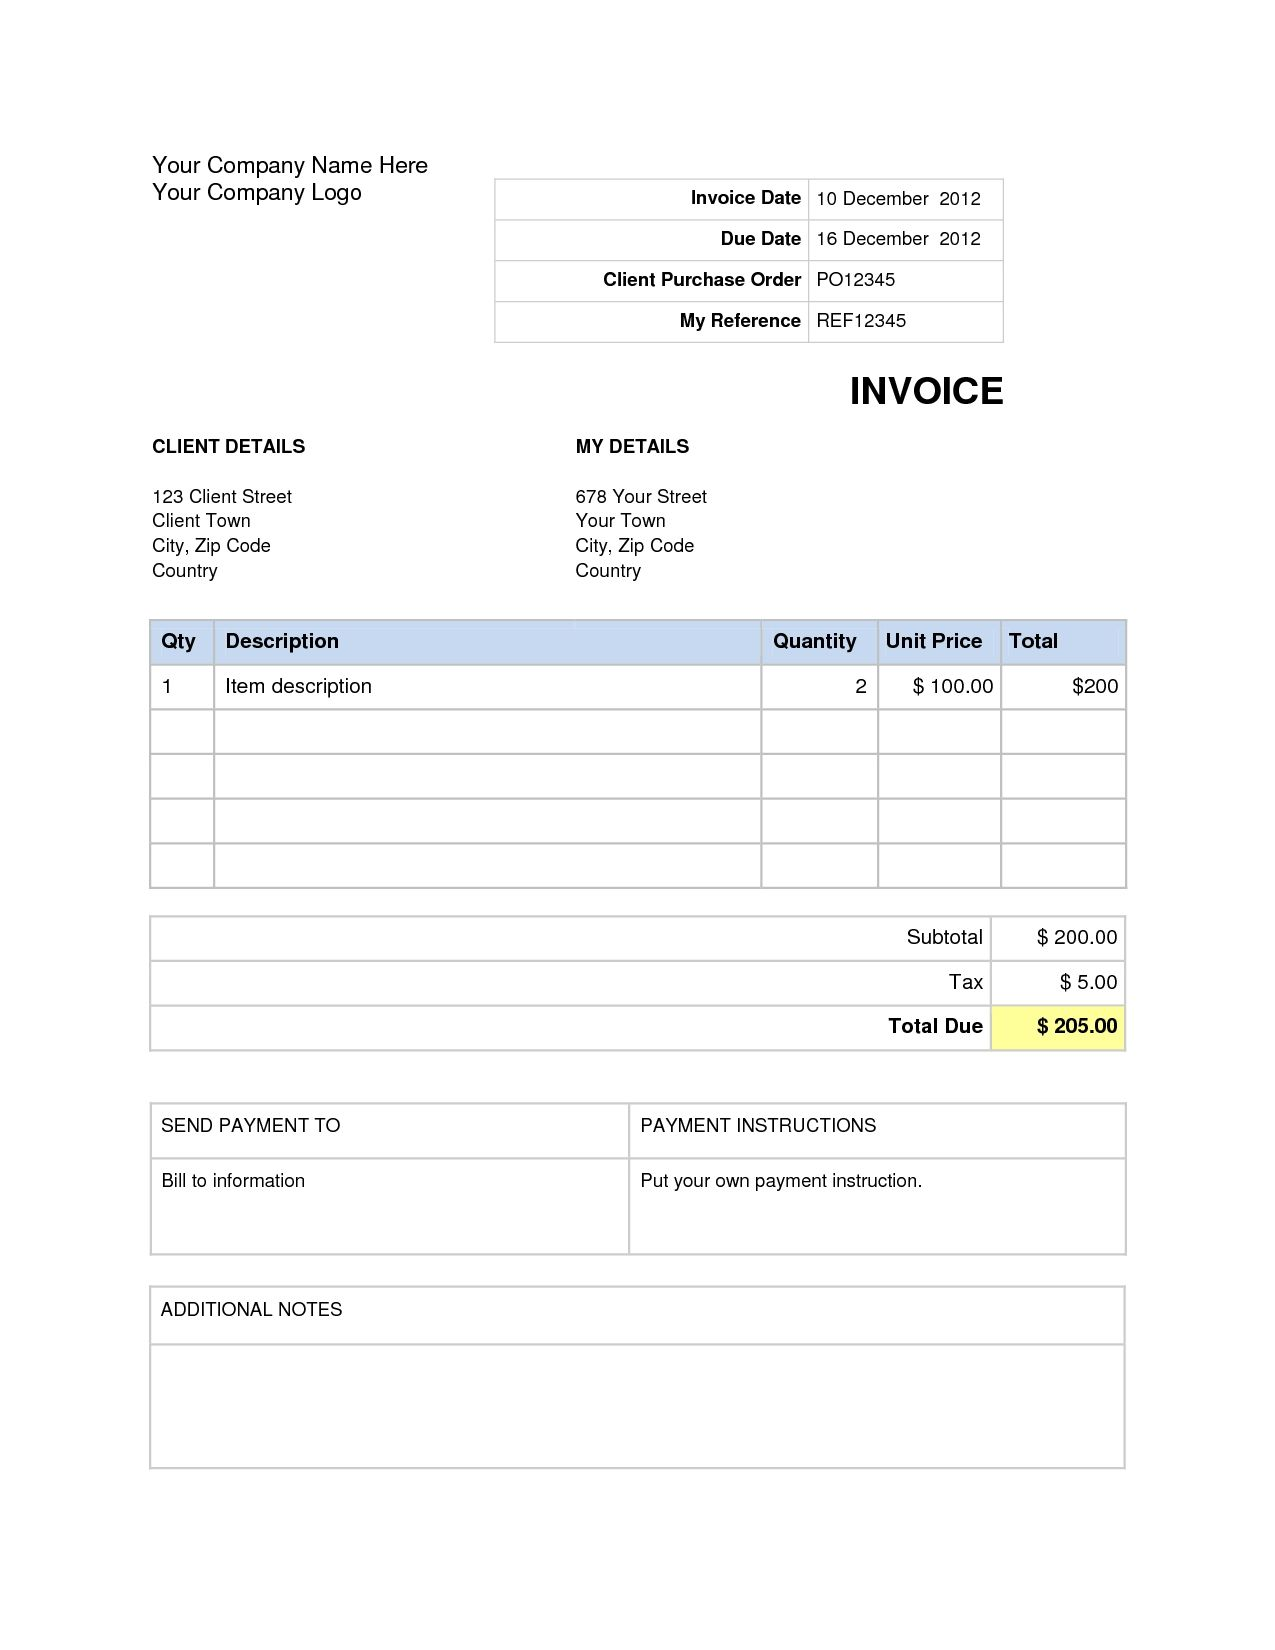 Word Document Invoice Template Blank Invoice Template Word Doc House - Commercial invoice template word free top 10 women's online clothing stores